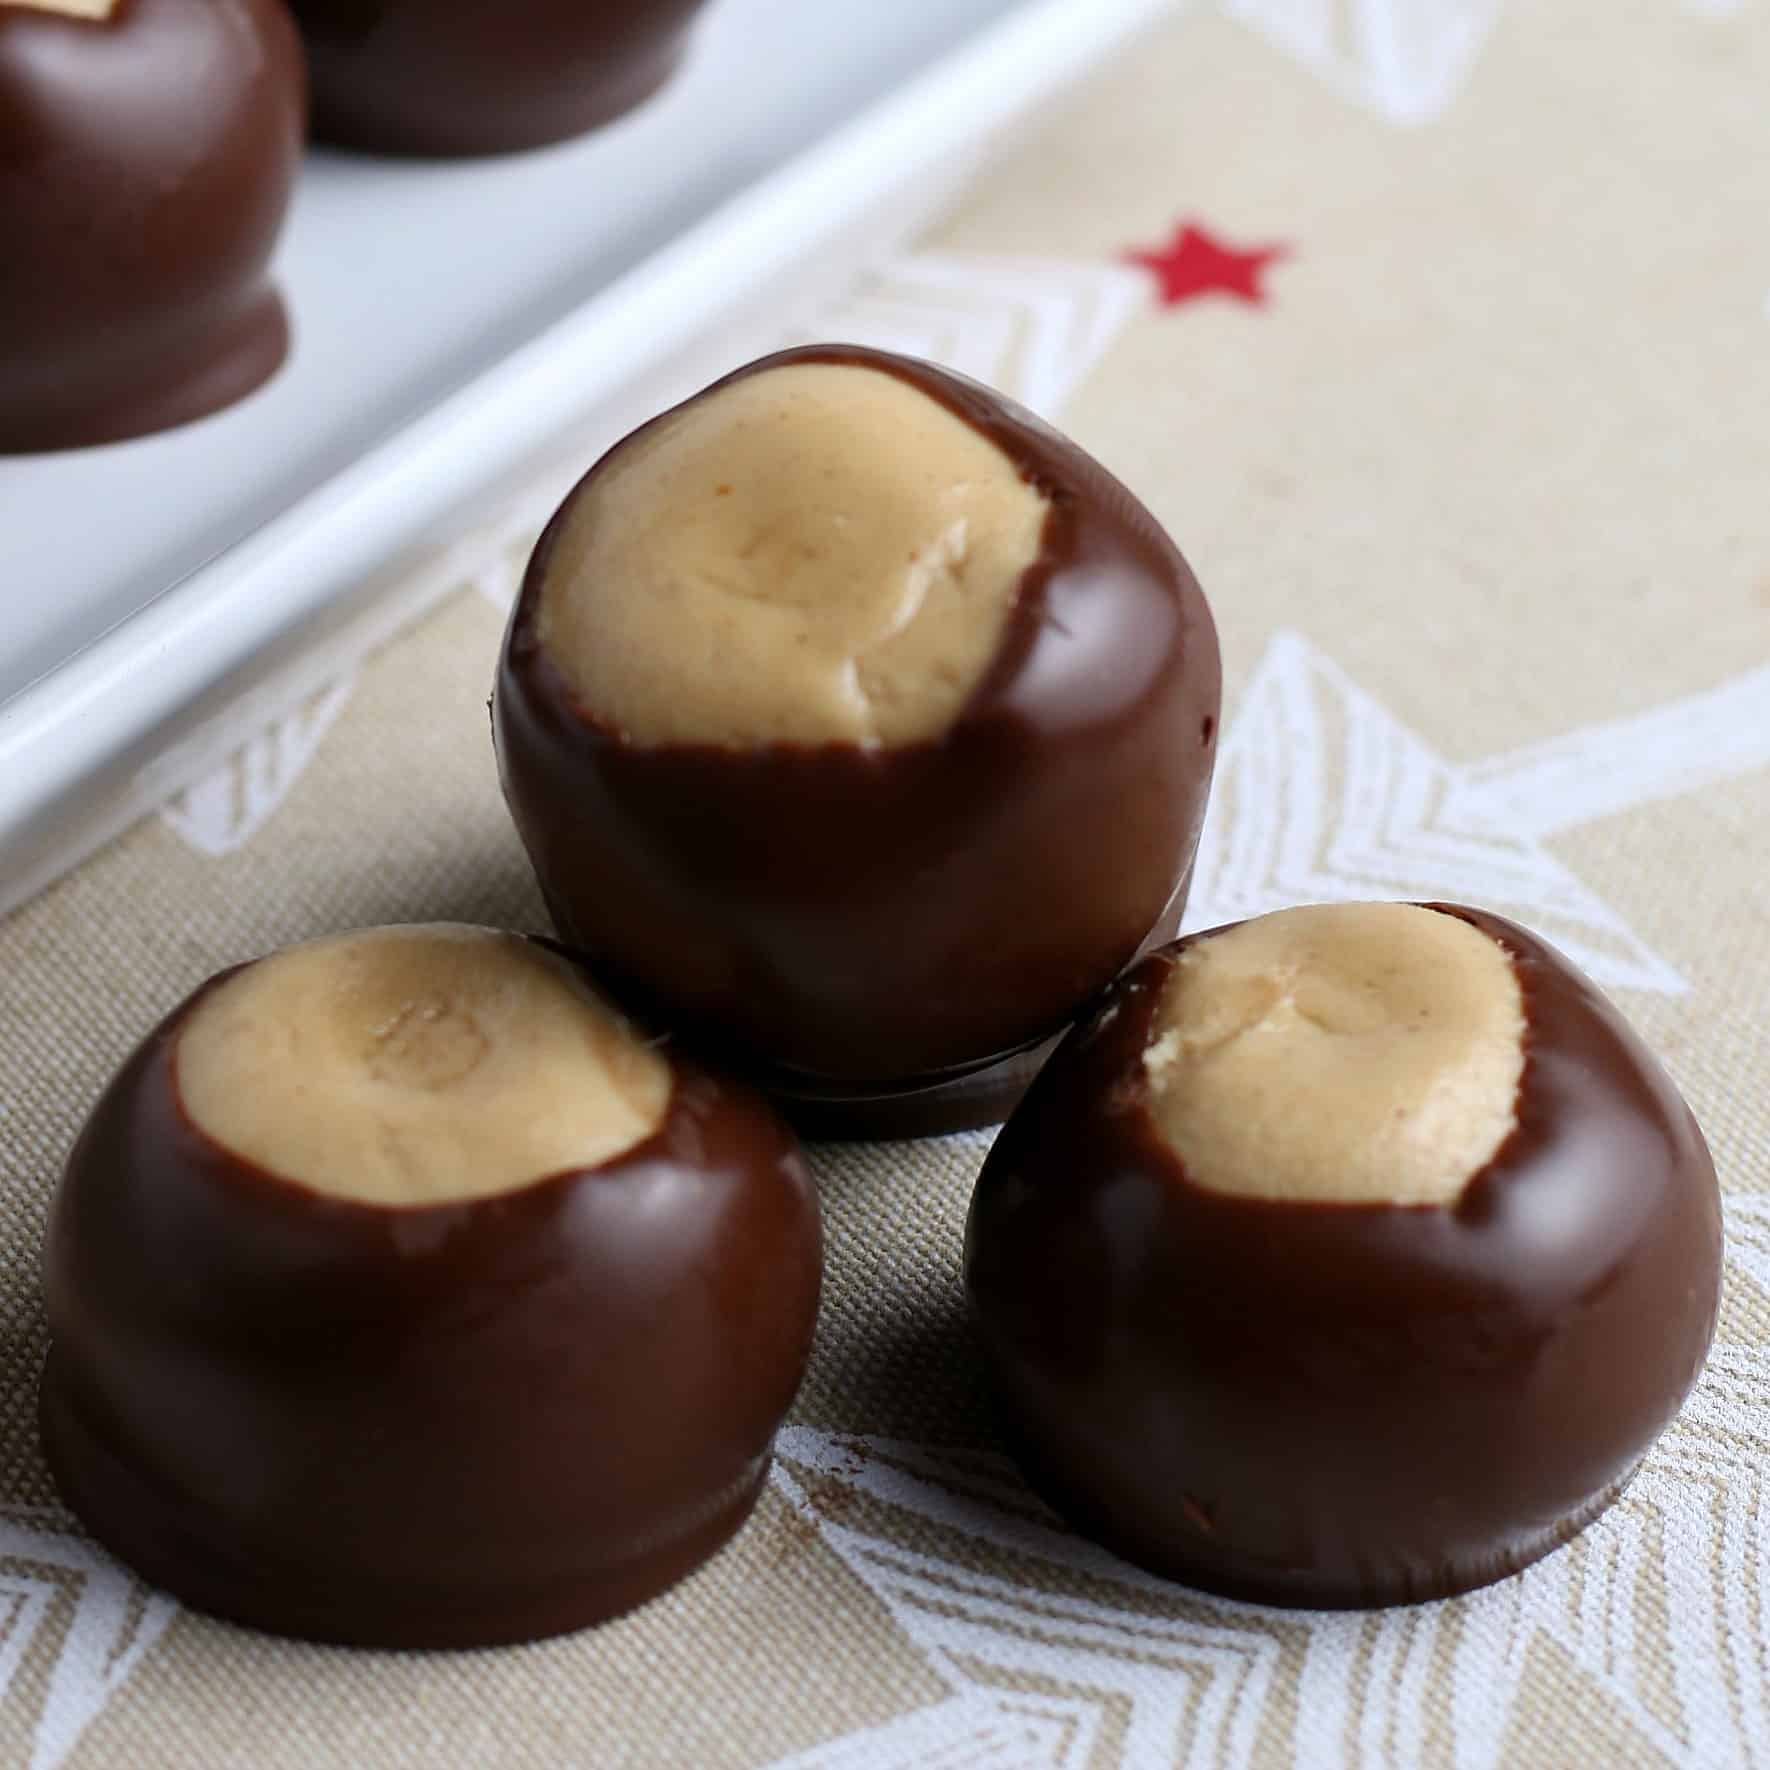 Three stacked peanut butter balls dipped in chocolate.